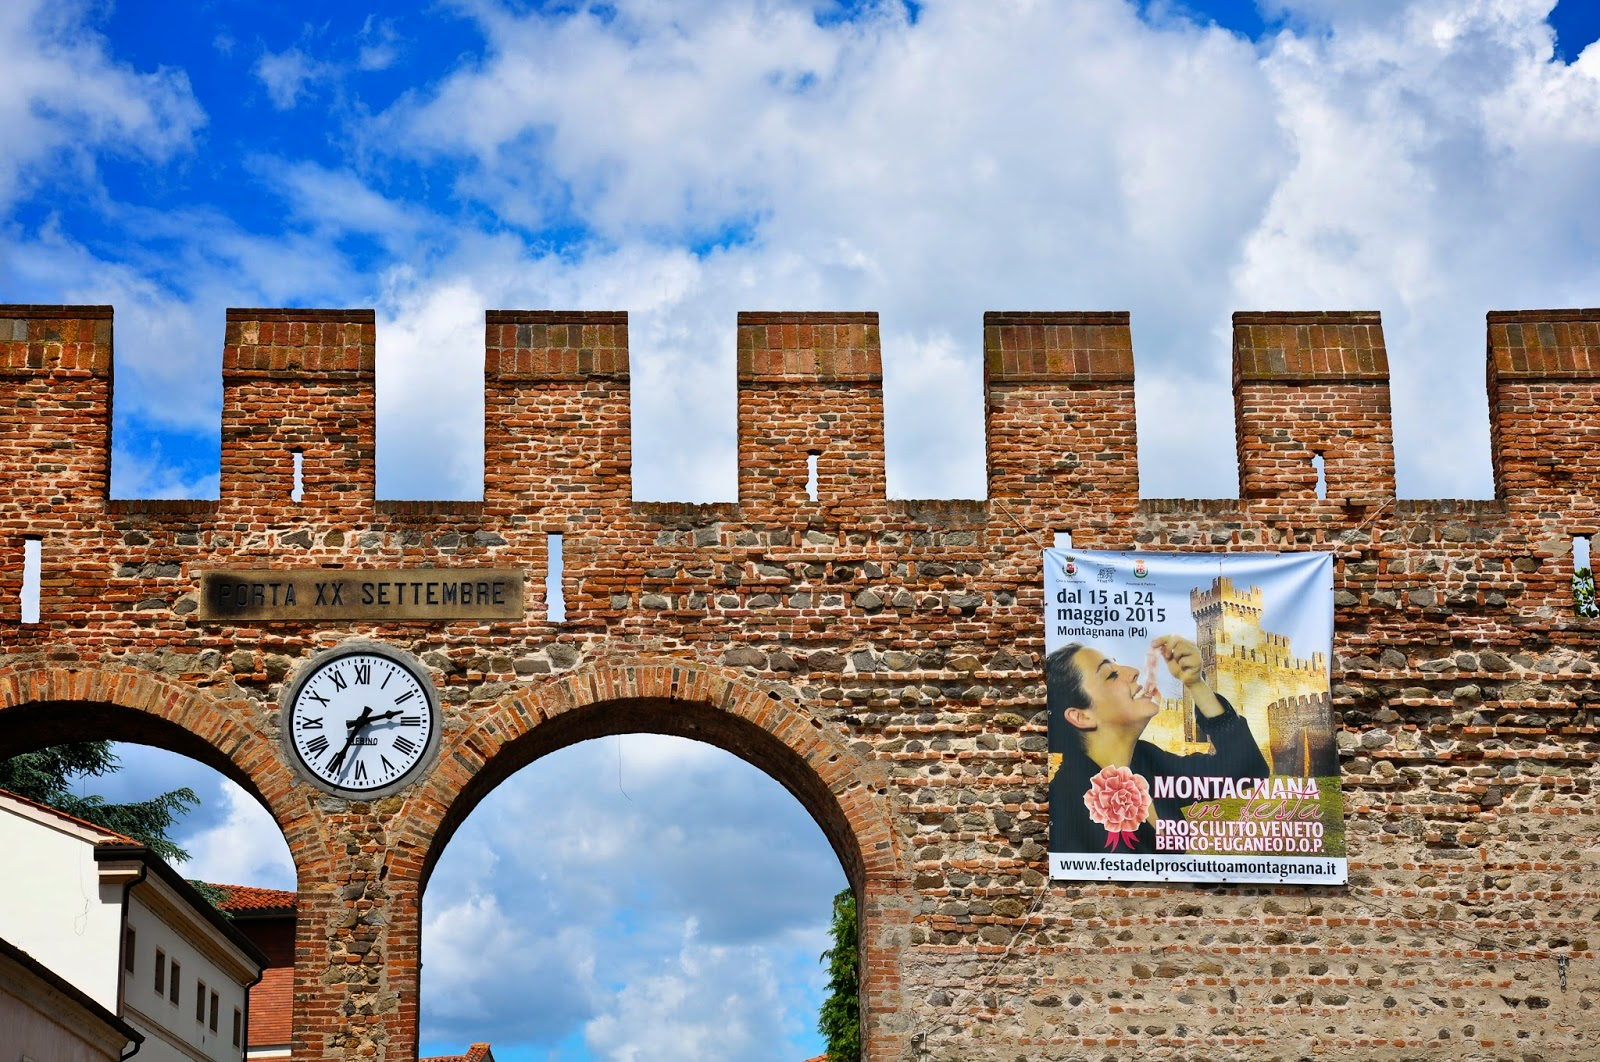 The poster for the Prosciutto festival on the defensive wall of Montagnana, Veneto, Italy